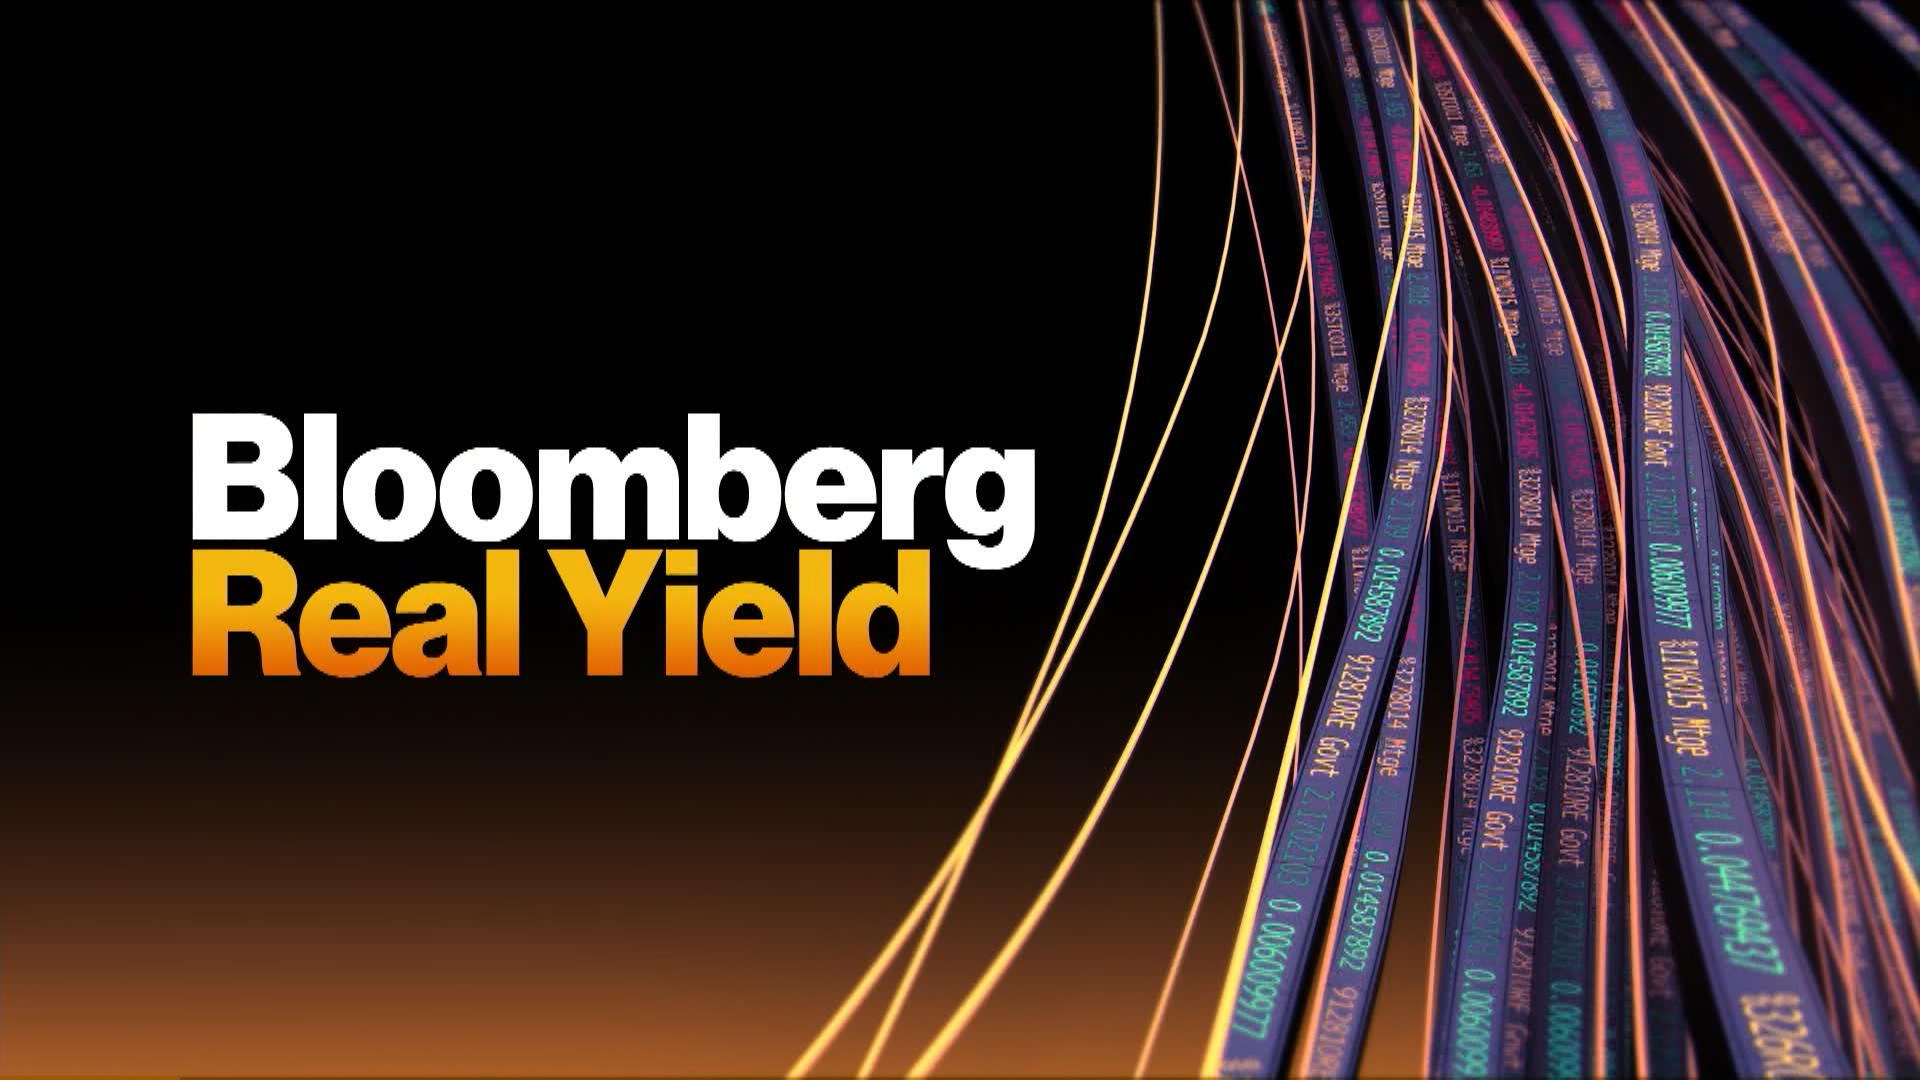 'Bloomberg Real Yield' Full Show (10/18/2019)